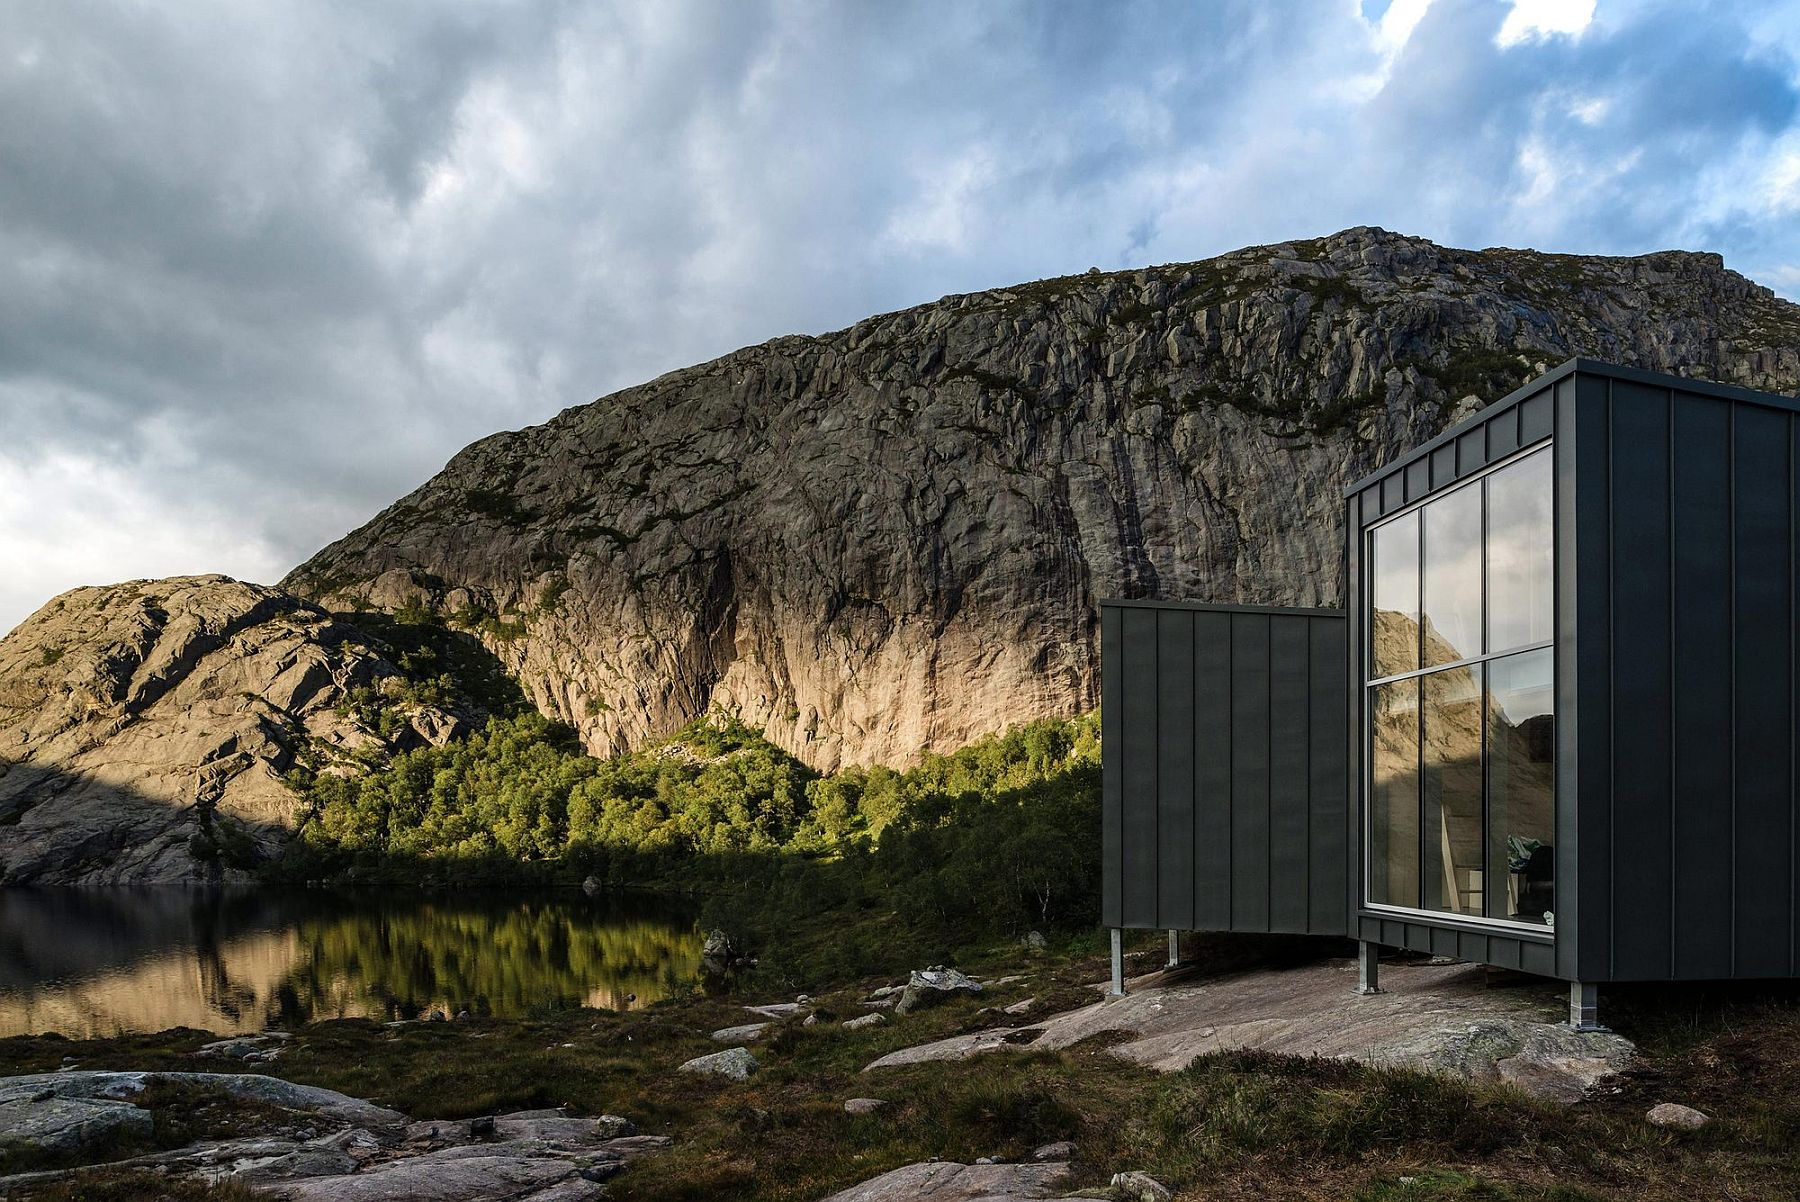 Self-catering mountain lodges in Norway